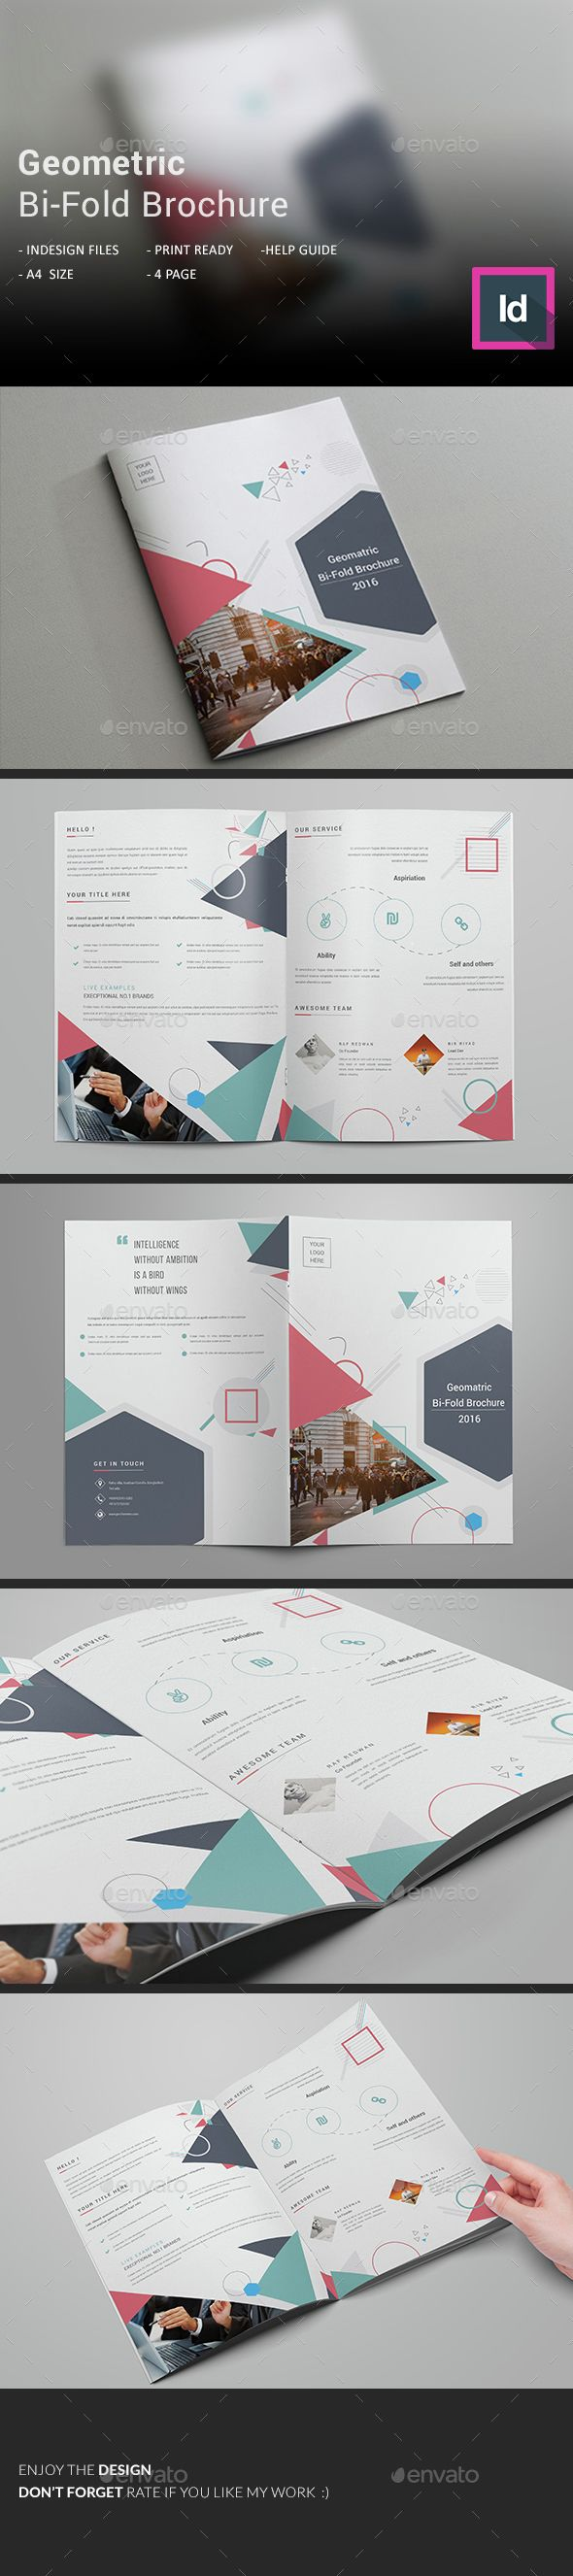 Geometric BiFold Brochure Brochure Template Brochures And Template - Bi fold brochure template indesign